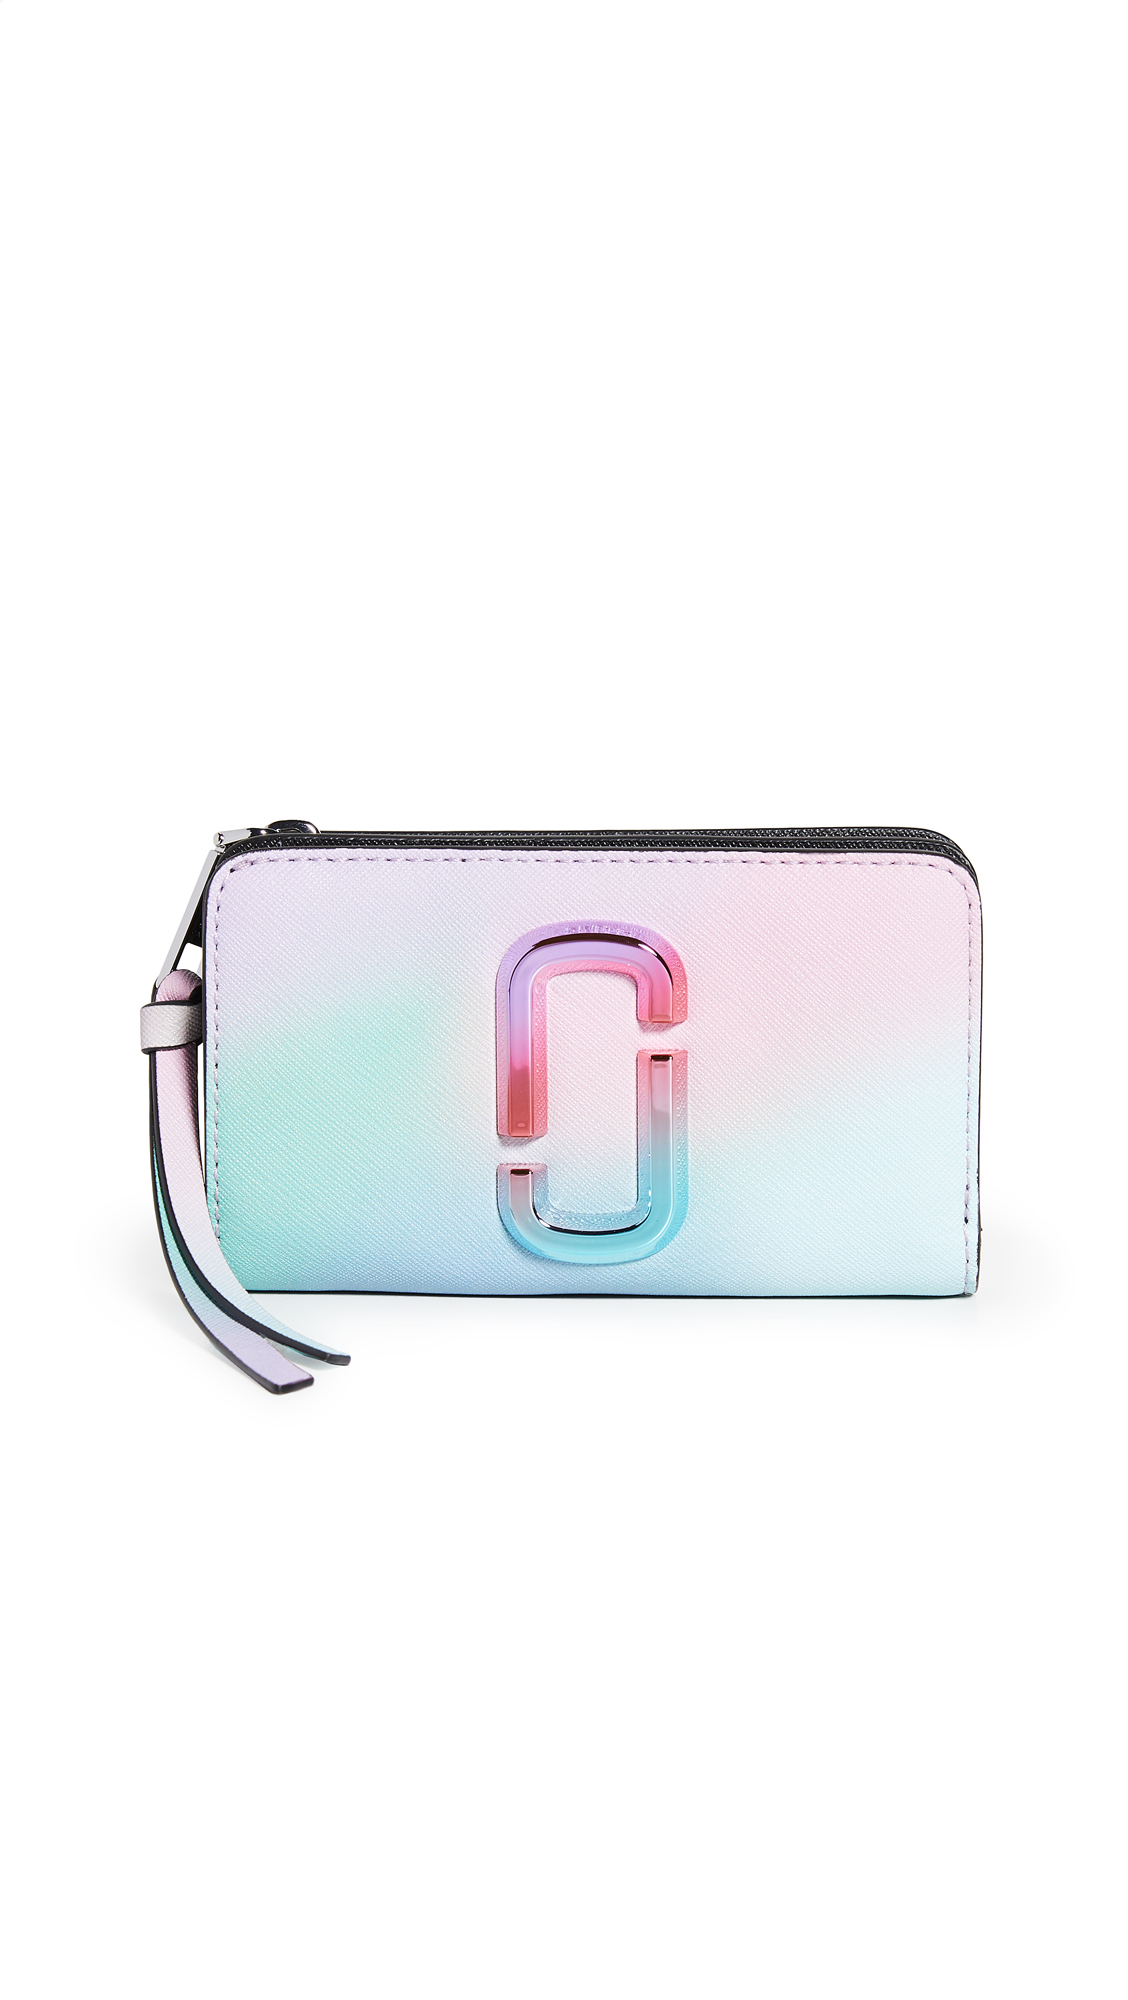 The Marc Jacobs Snapshot Airbrushed Compact Wallet